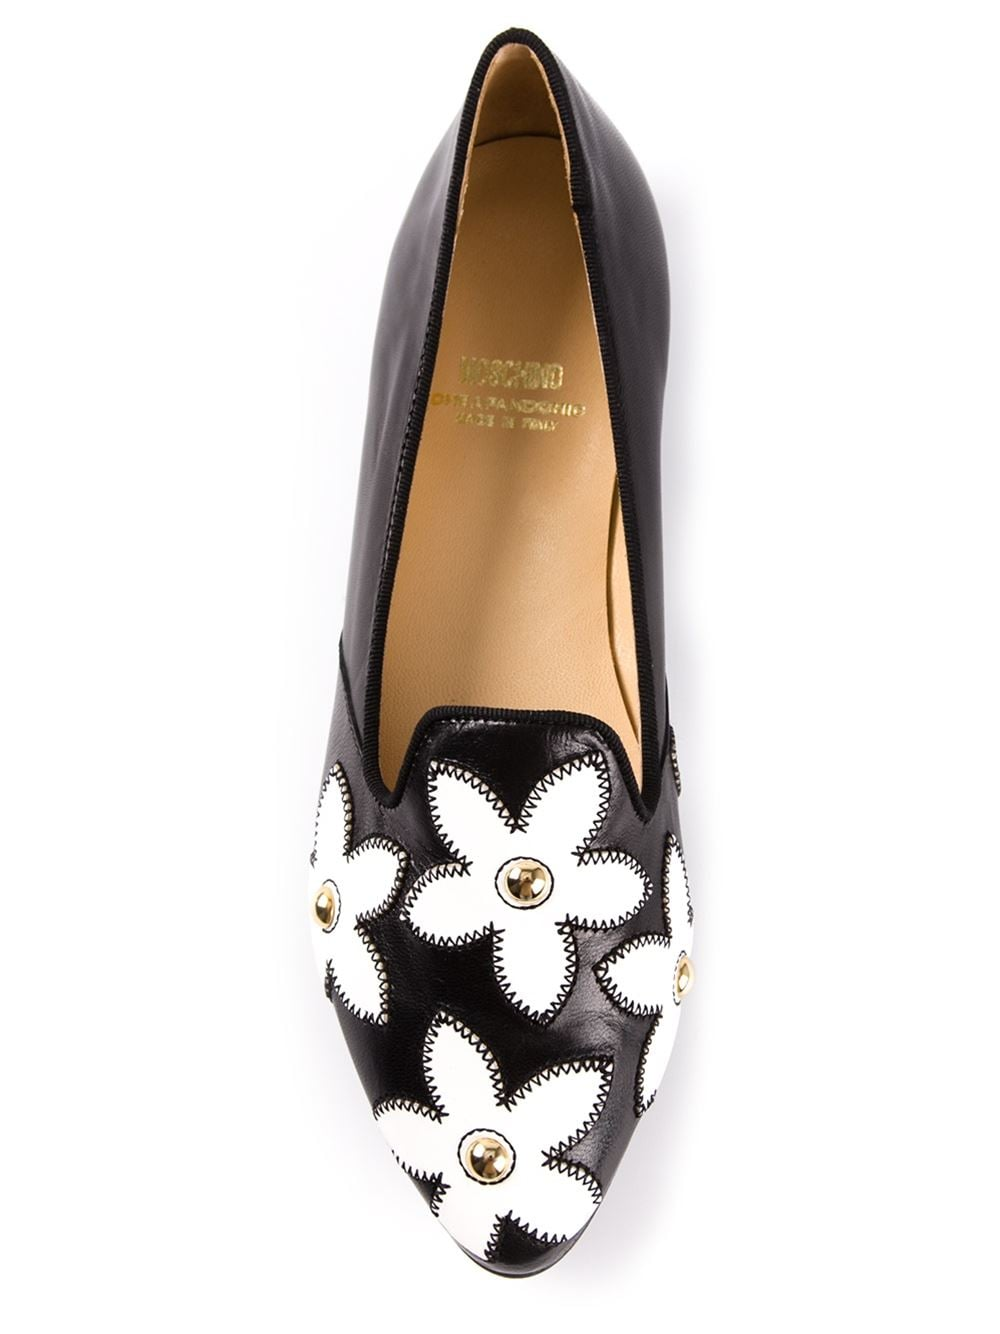 Moschino Cheap & Chic Floral Loafer